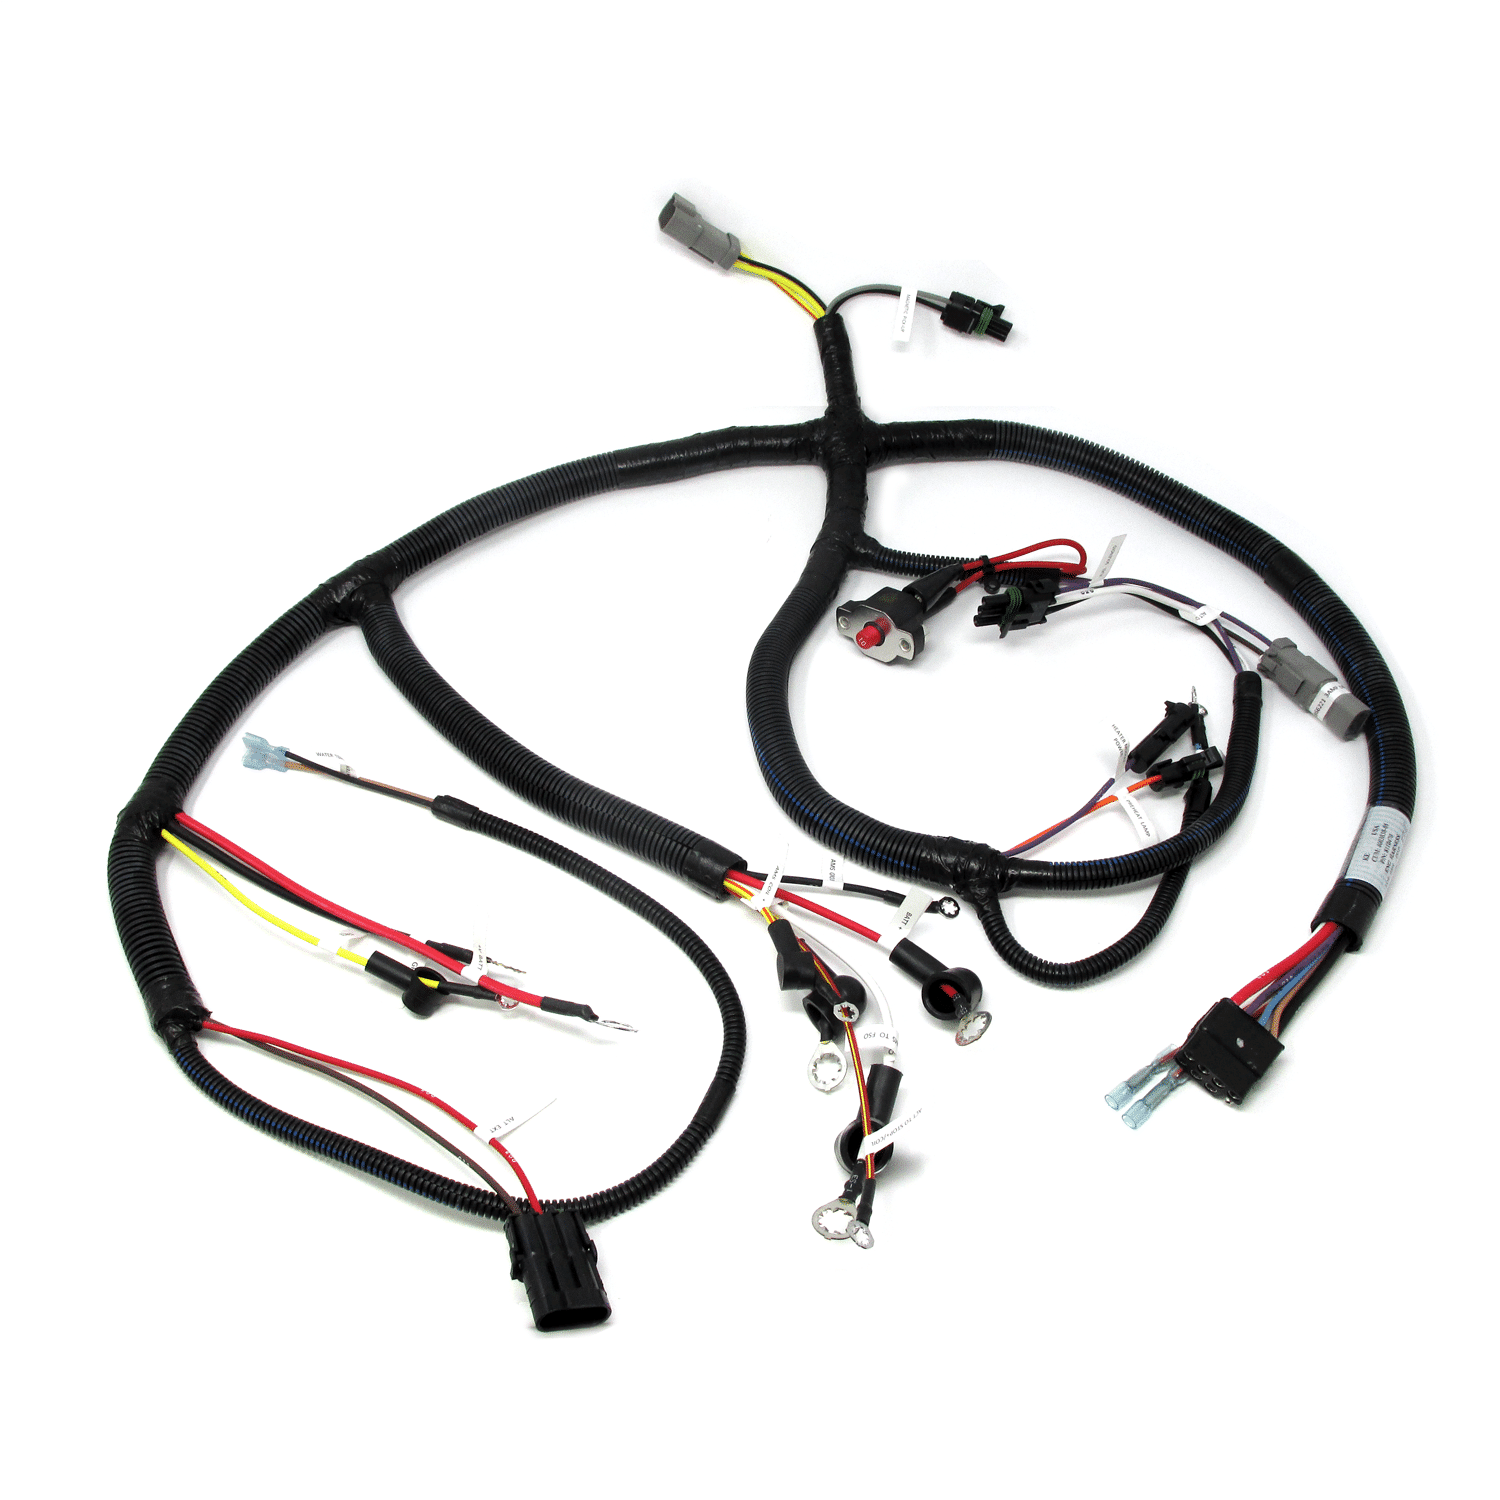 mins Mechanical On-Engine Wiring Harness on